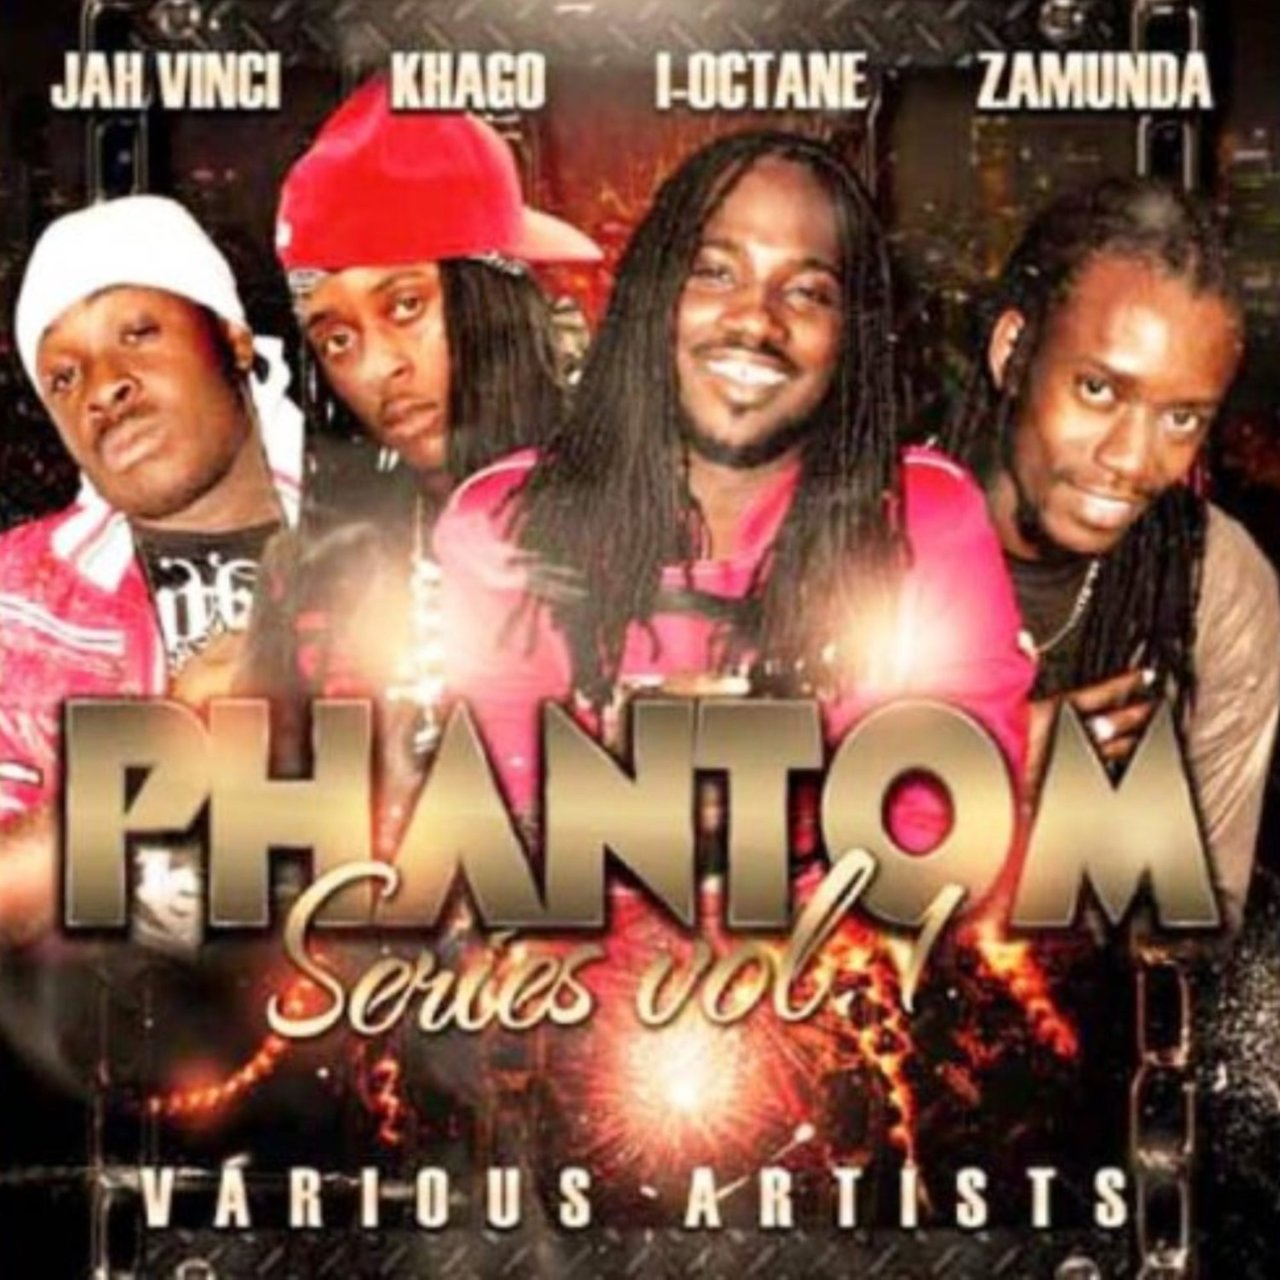 The Phantom Series Vol.1